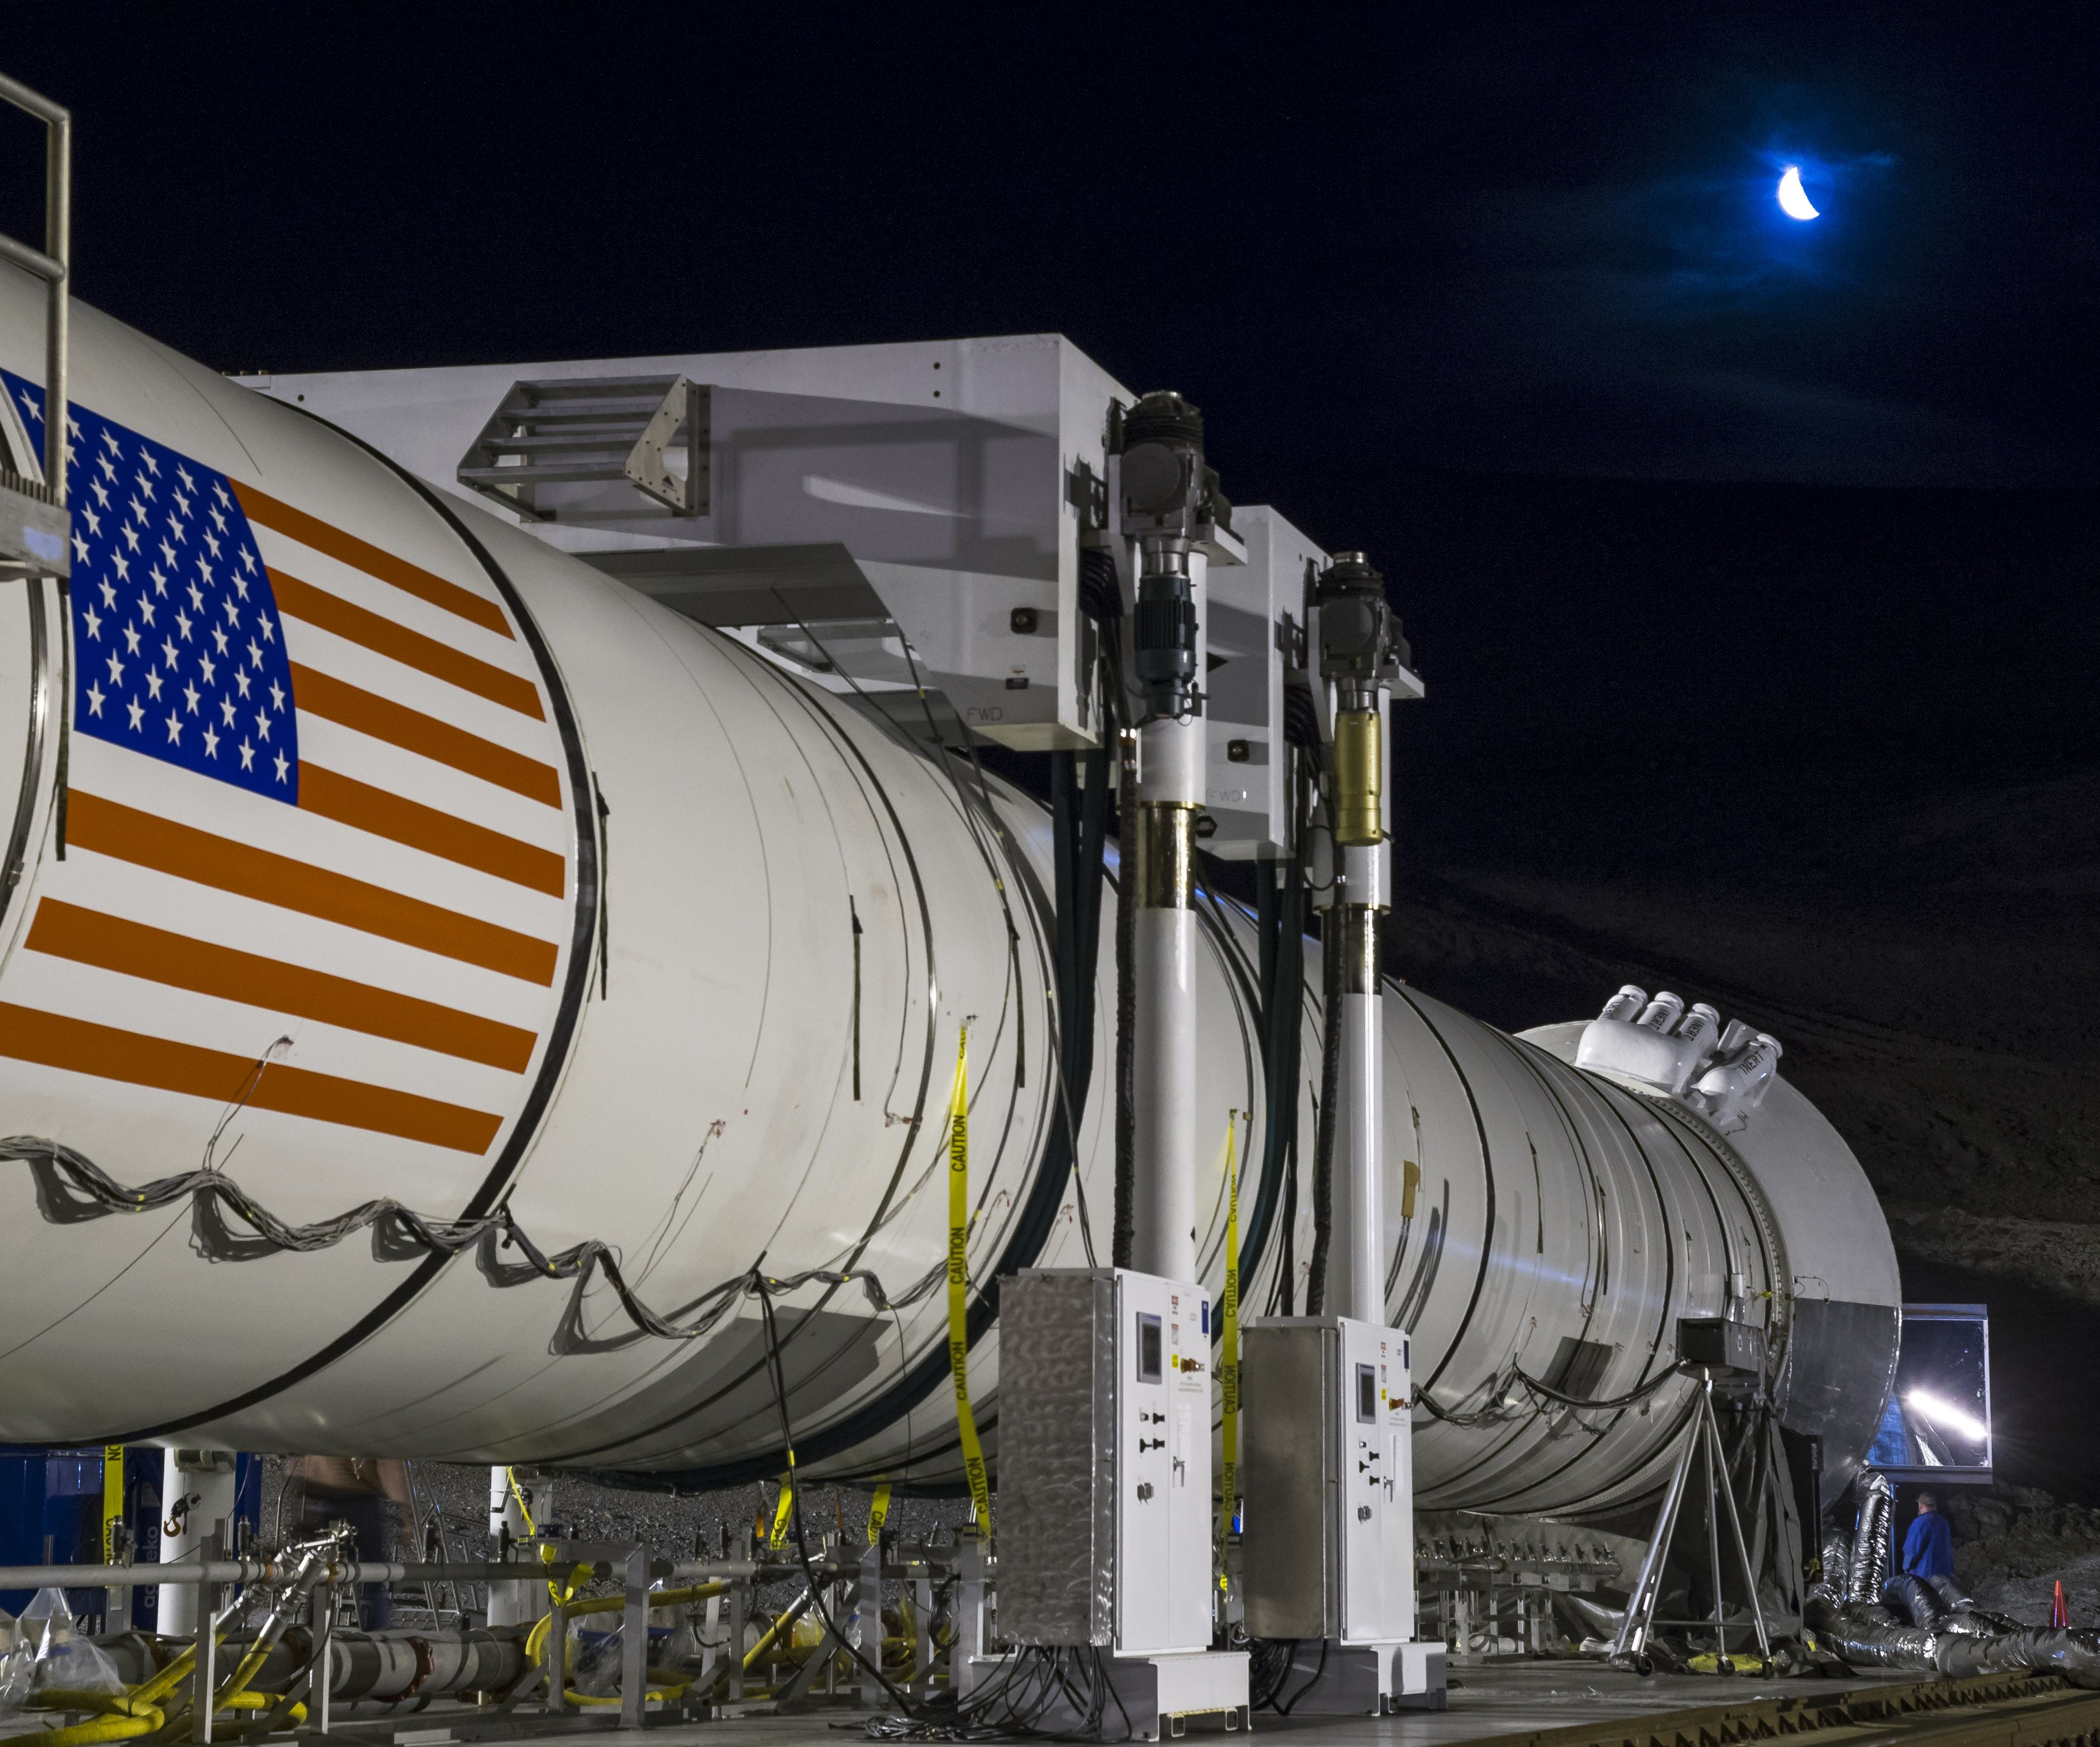 Solid Rocket City: The Utah Space Center Fighting for Its Life